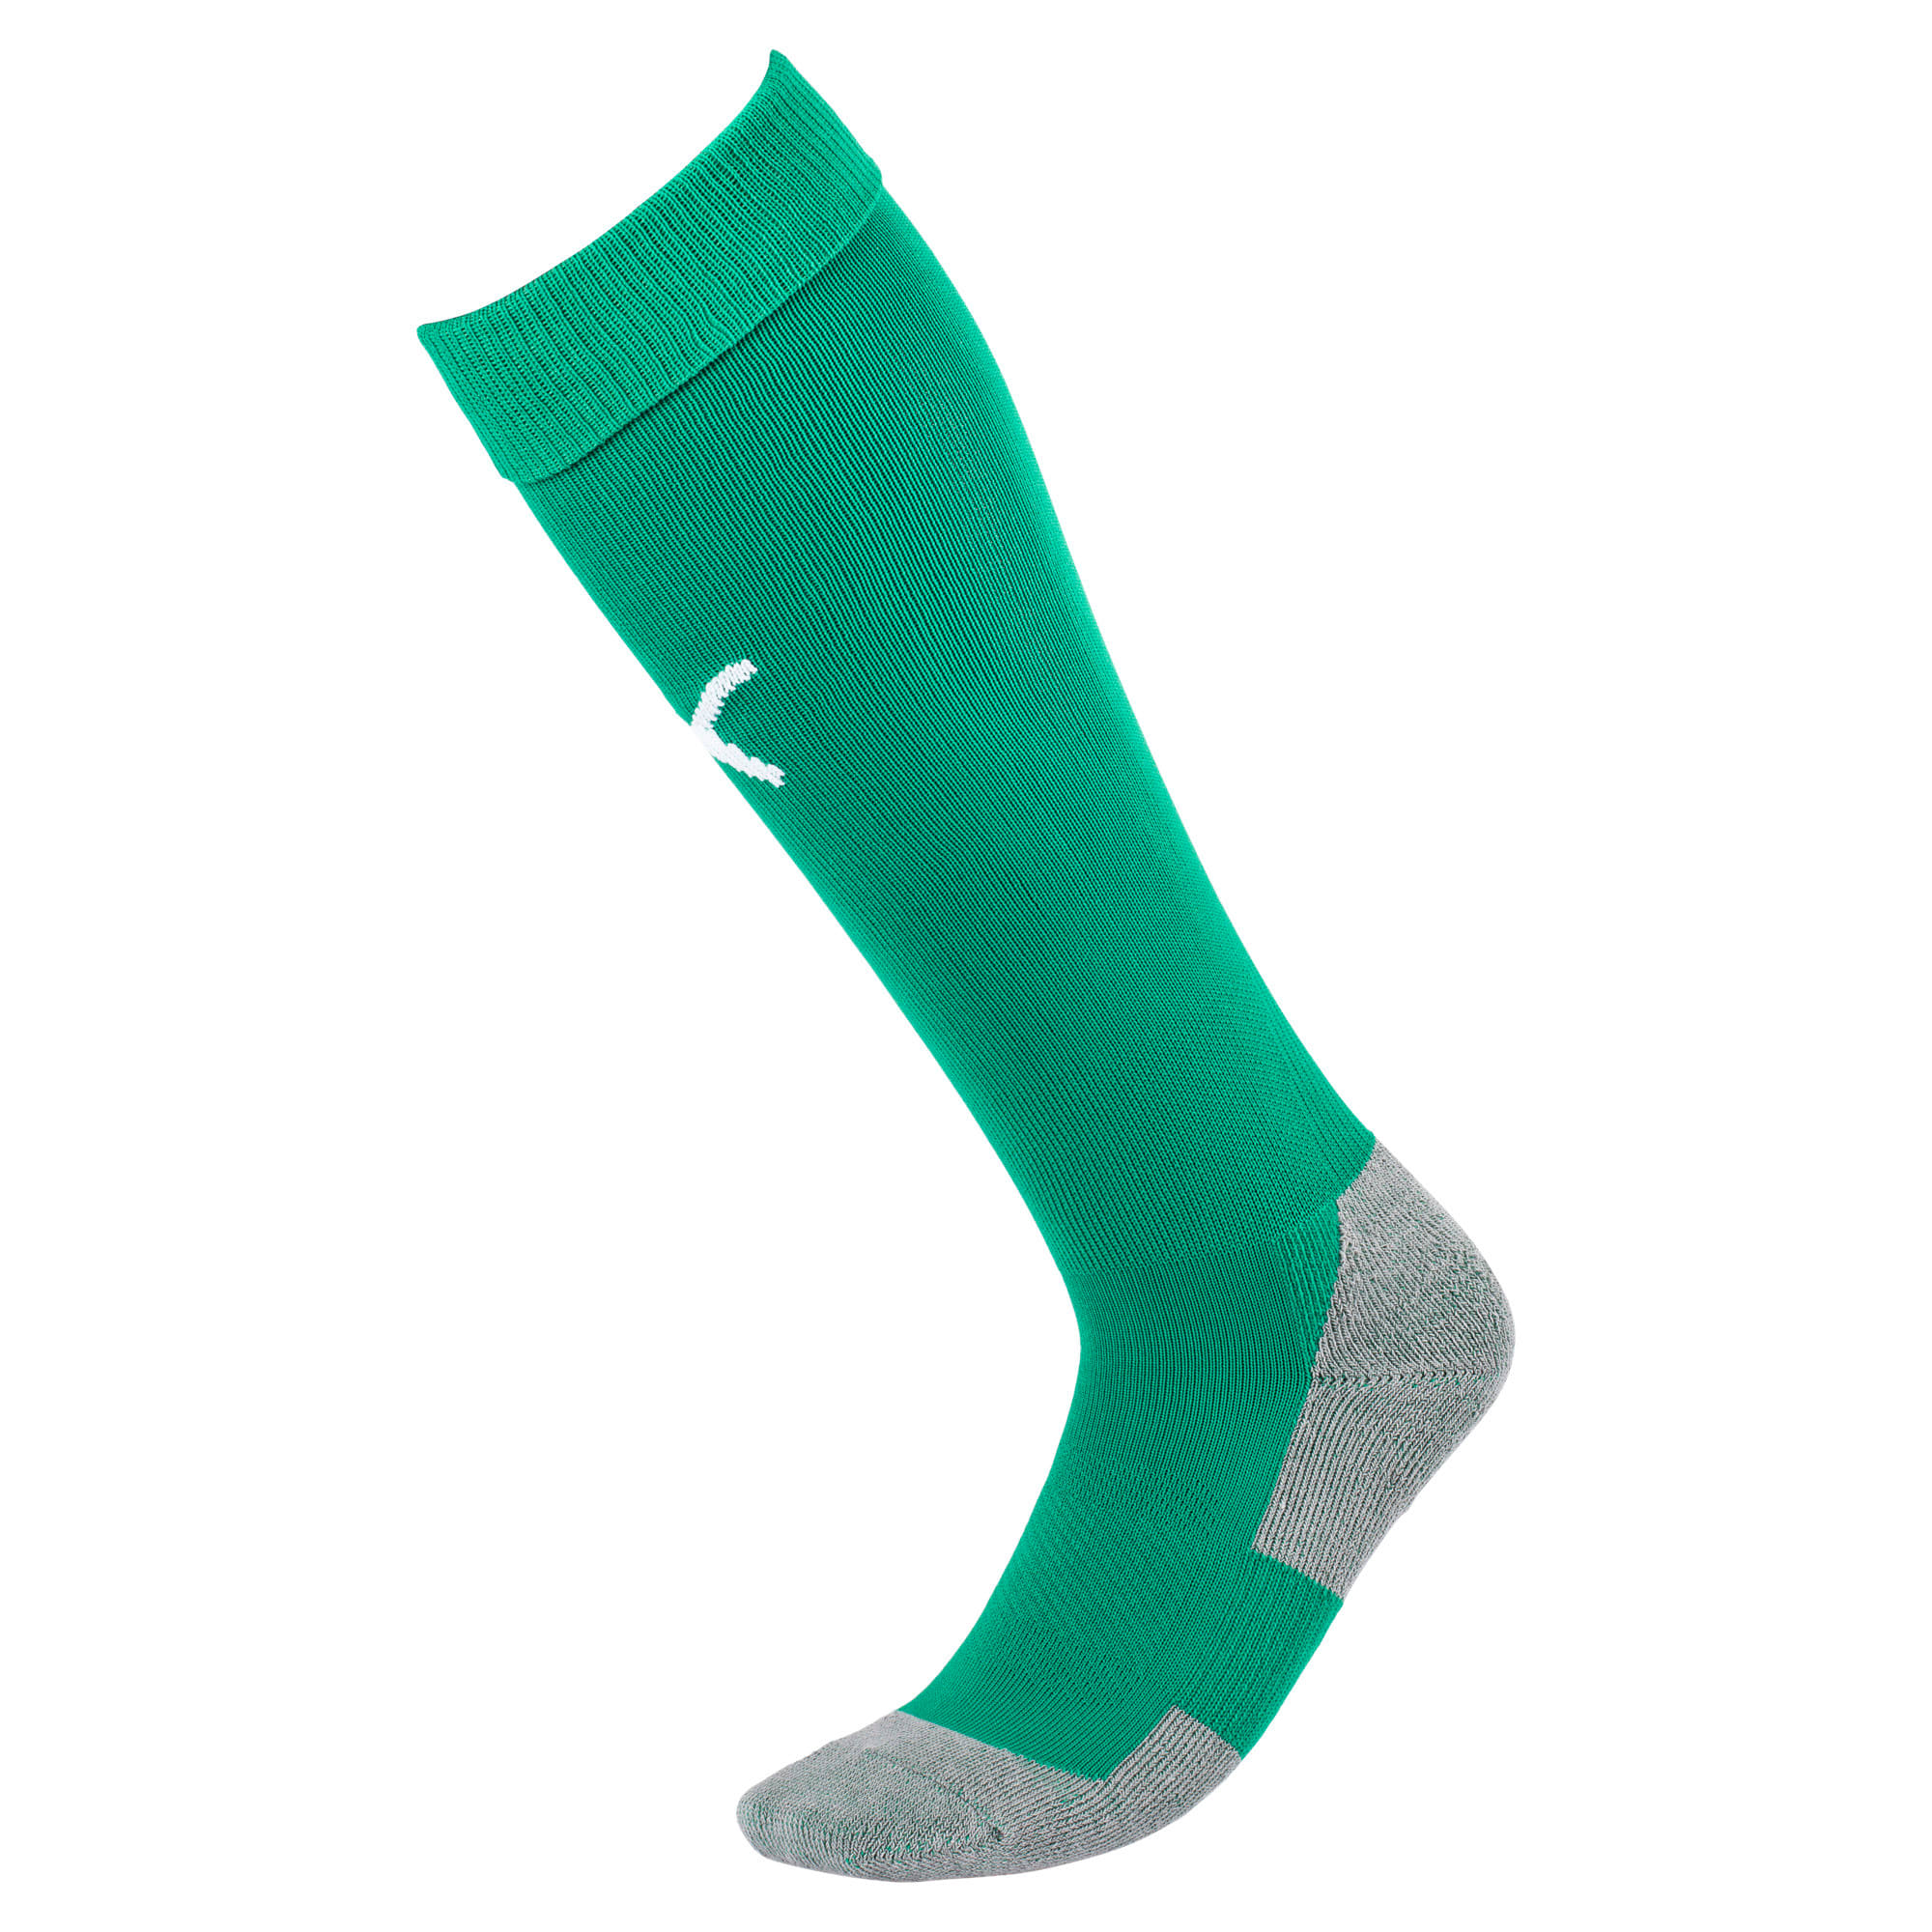 Thumbnail 1 of Fußball Herren LIGA Core Socken, Bright Green-Puma White, medium